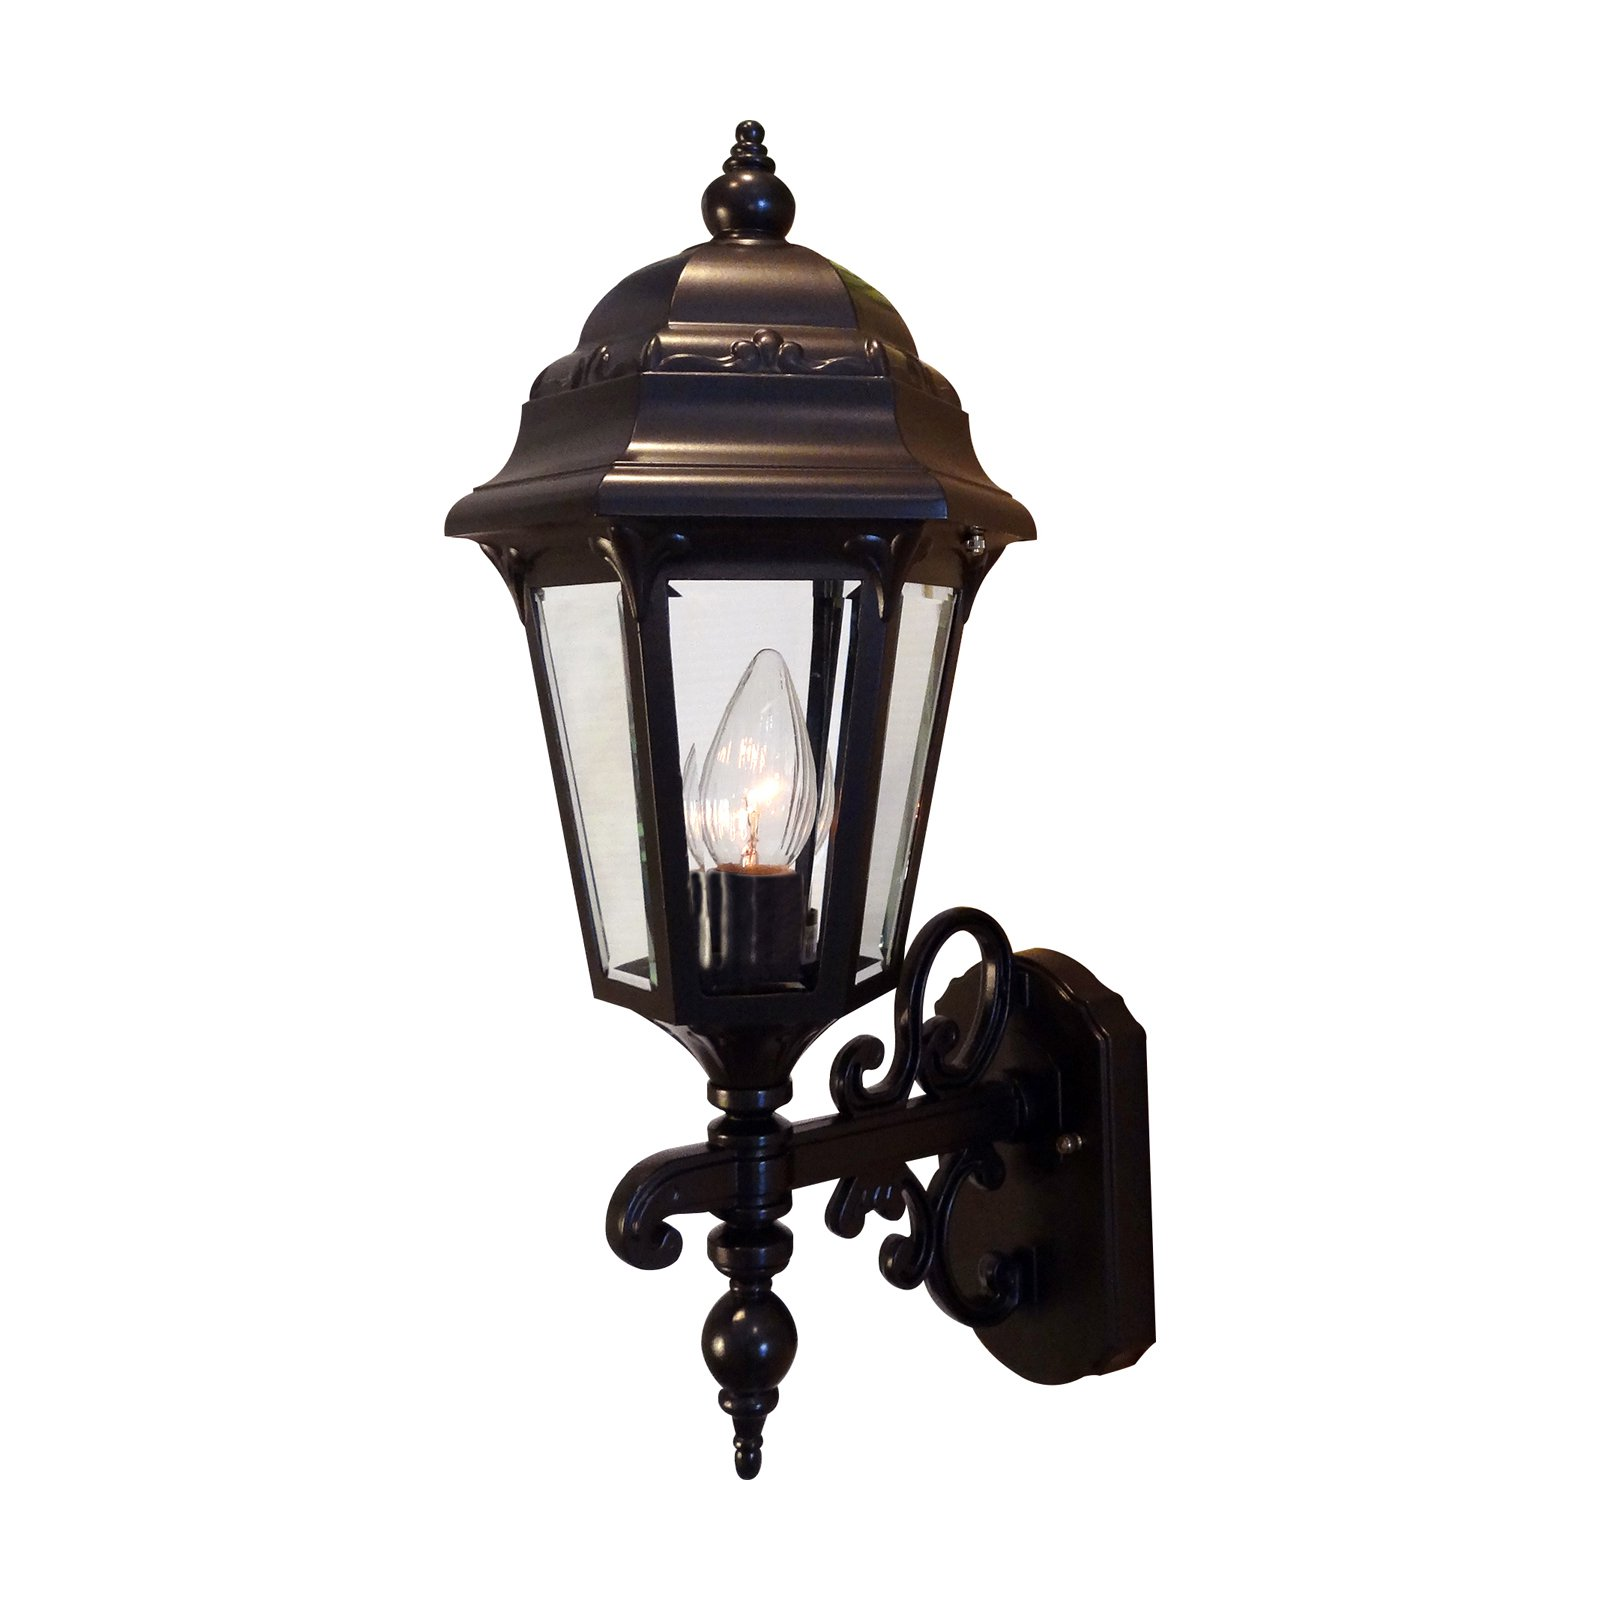 Special Lite Products Astor F-3967 Large Bottom Mount Outdoor Wall Light